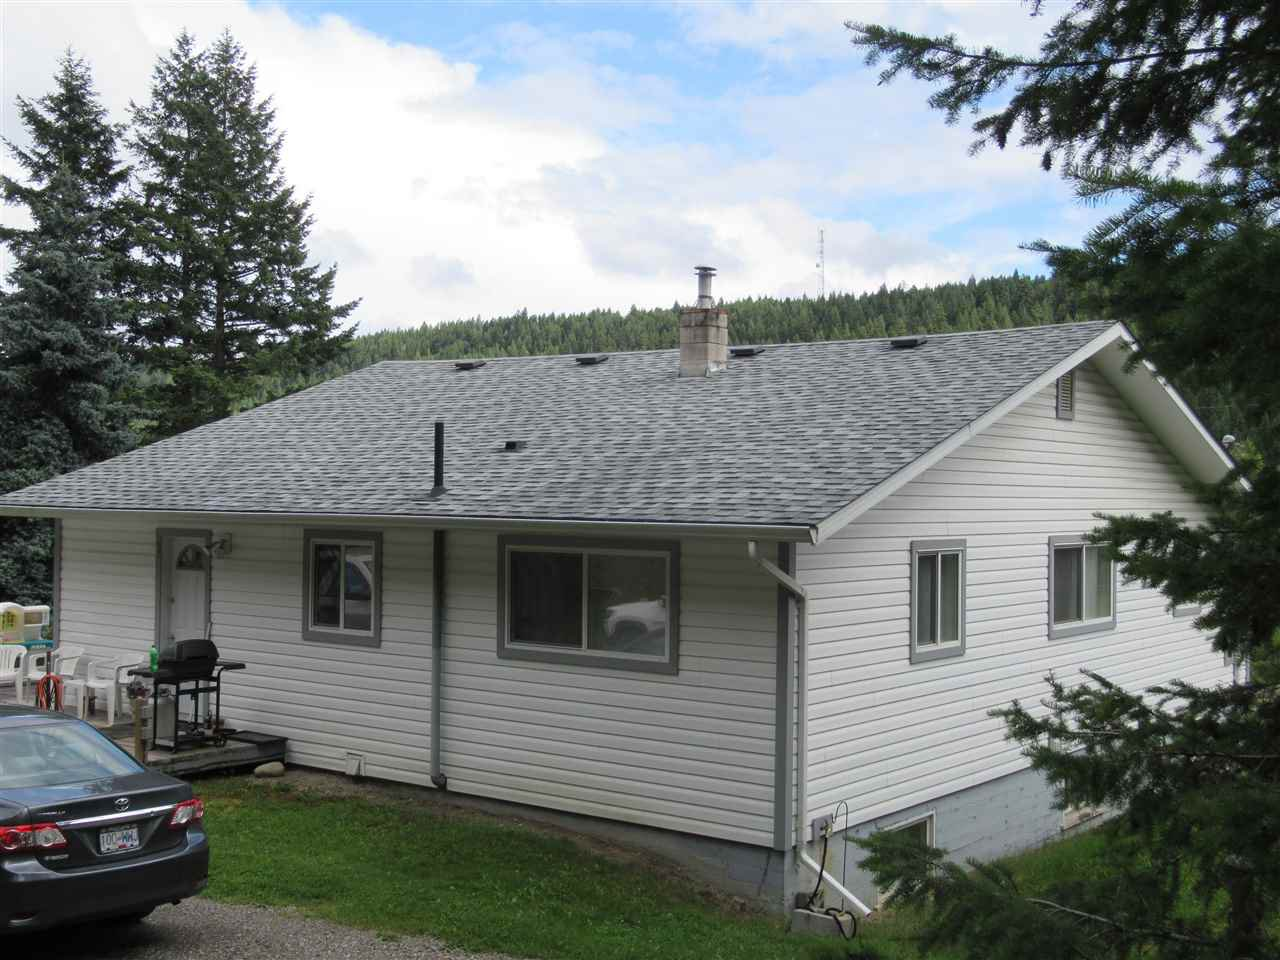 Photo 23: Photos: 3035 FIRDALE Drive in Williams Lake: Williams Lake - Rural North House for sale (Williams Lake (Zone 27))  : MLS®# R2484738